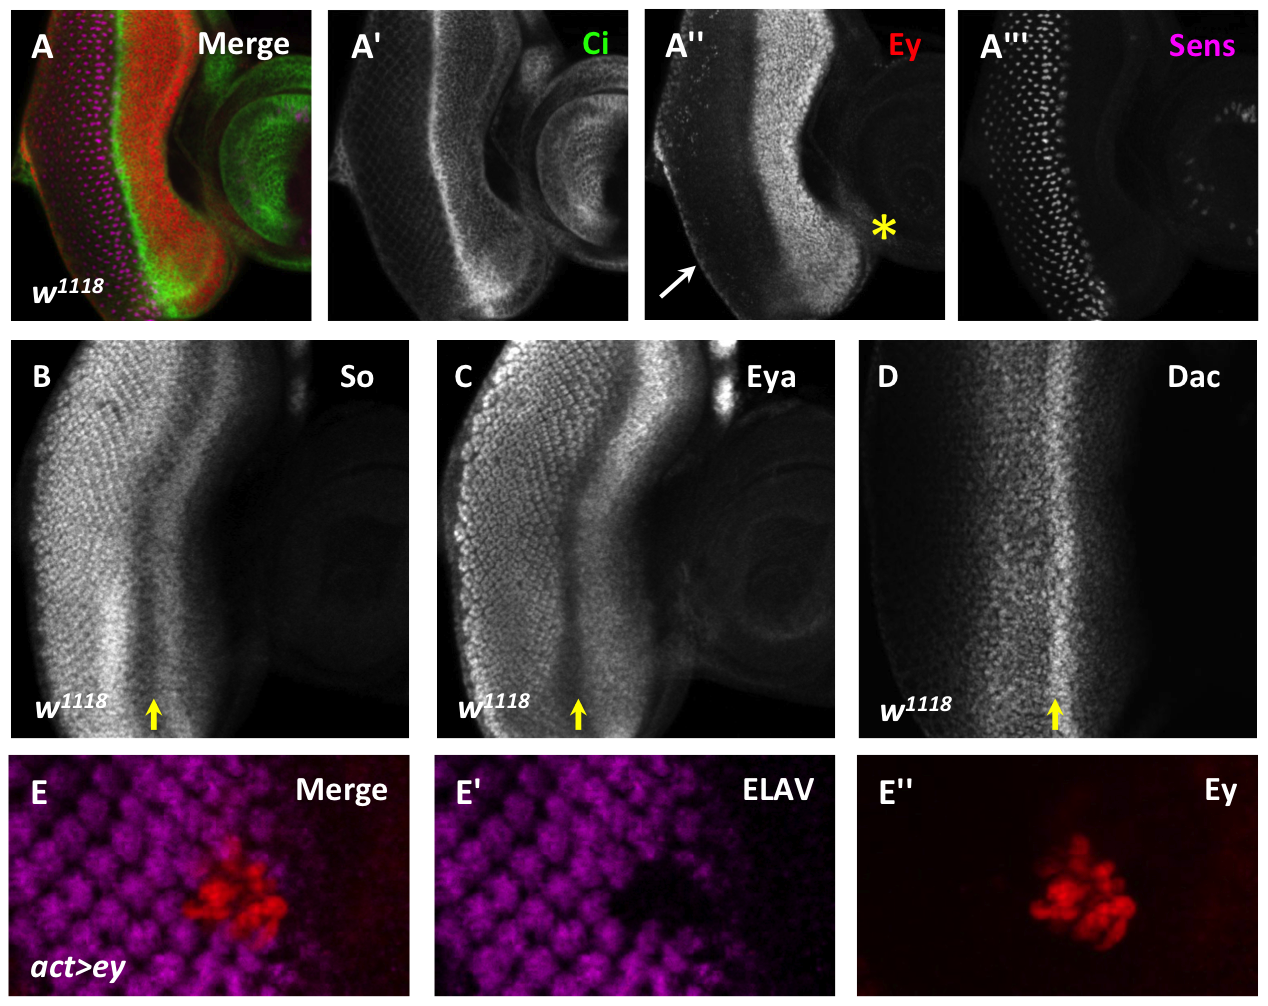 Ey repression at the morphogenetic furrow is necessary for differentiation.